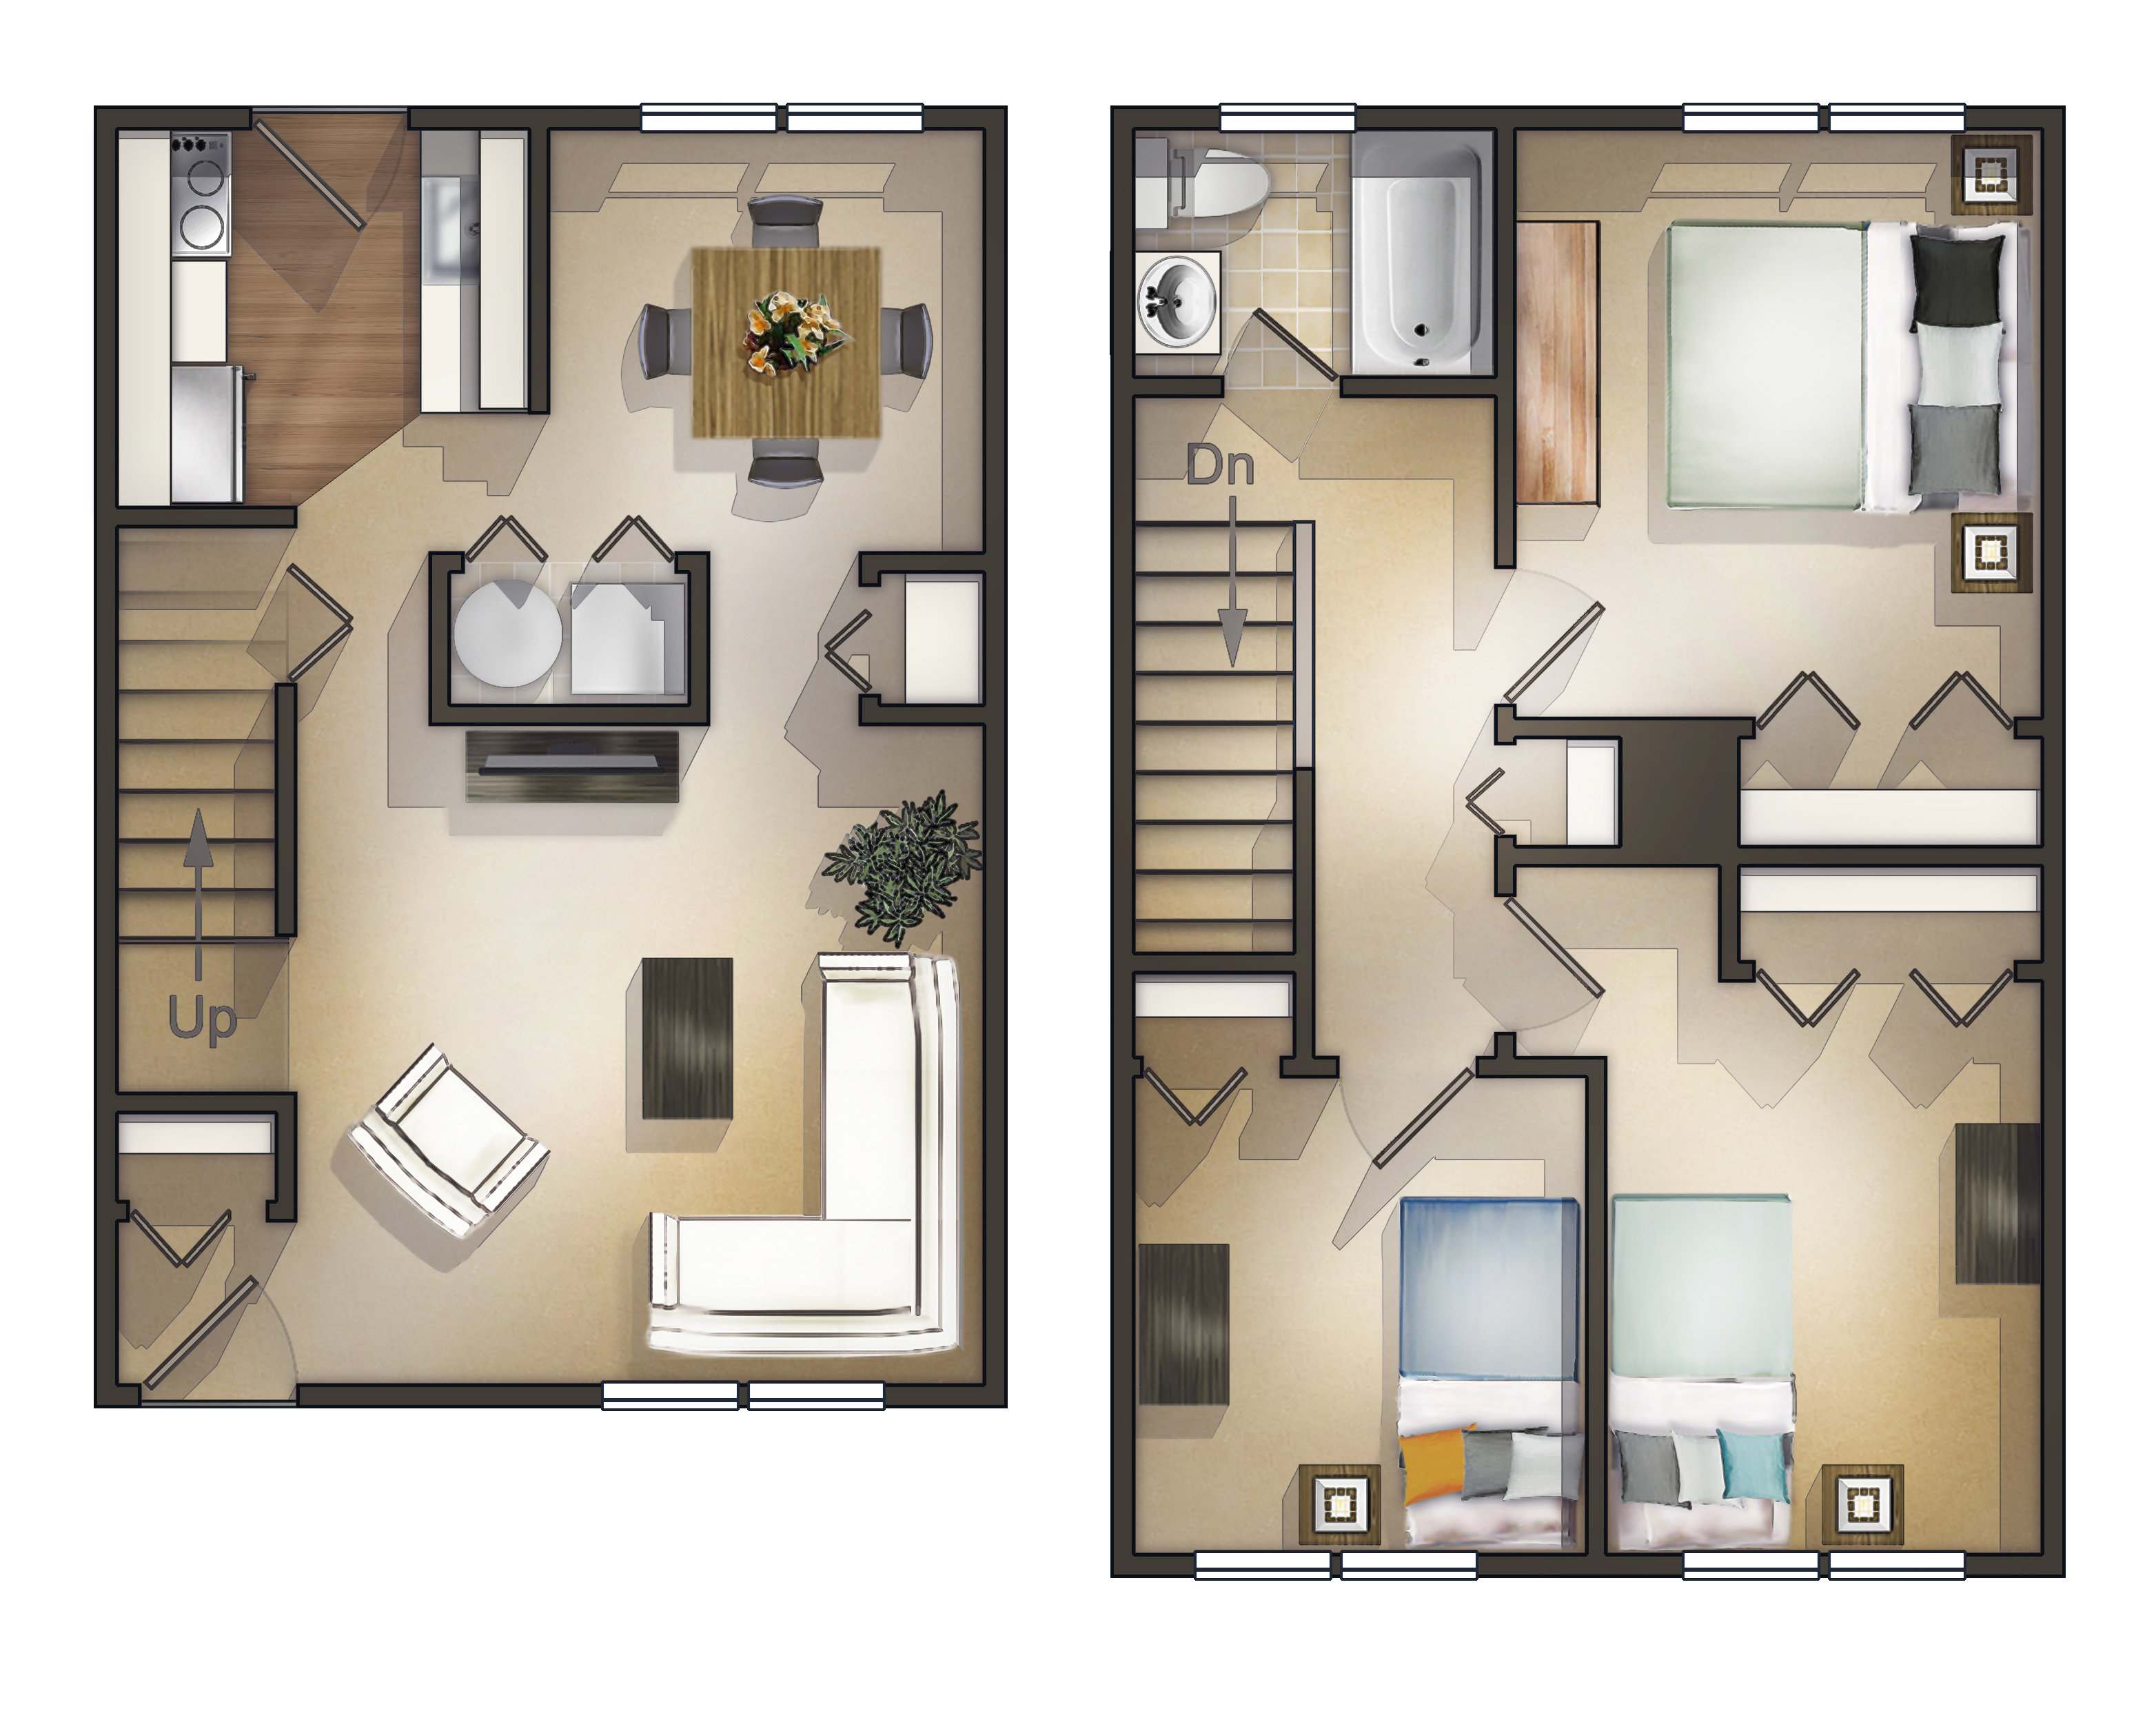 3 Bedroom Townhouse Unit Floorplan